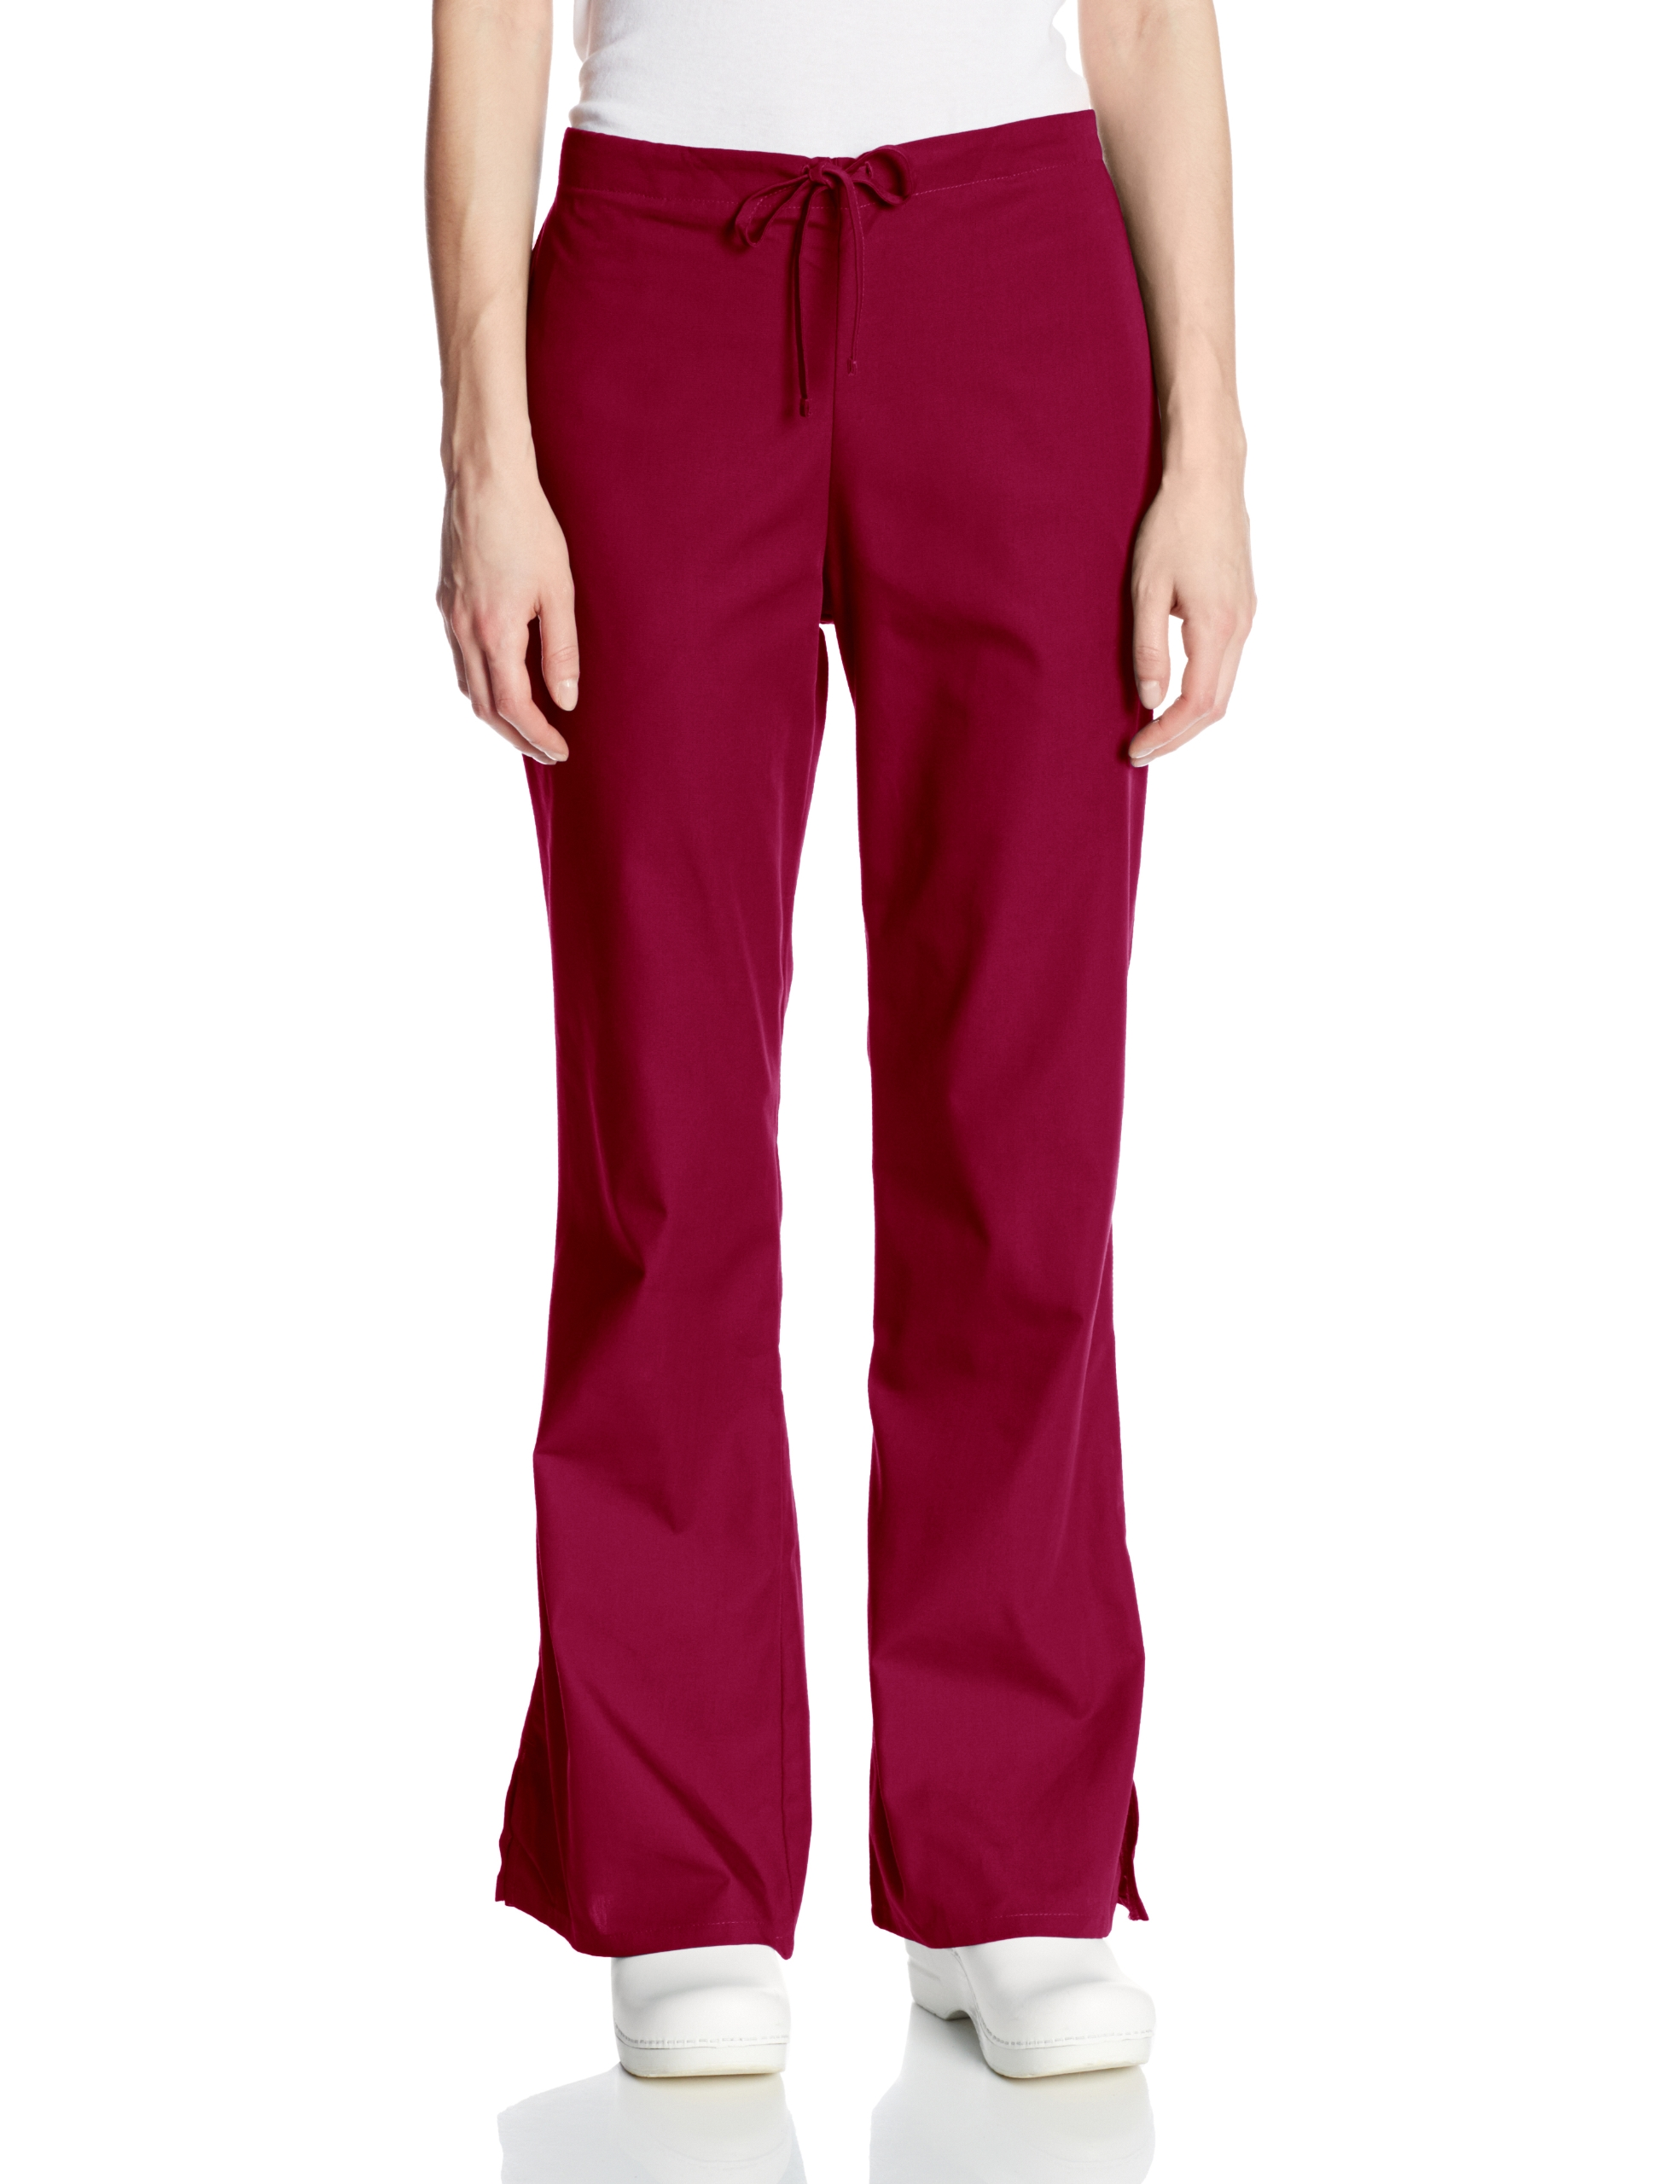 Cherokee Women's Fashionable Flare Leg Drawstring Pant, Wine, 2X-Large-Petite